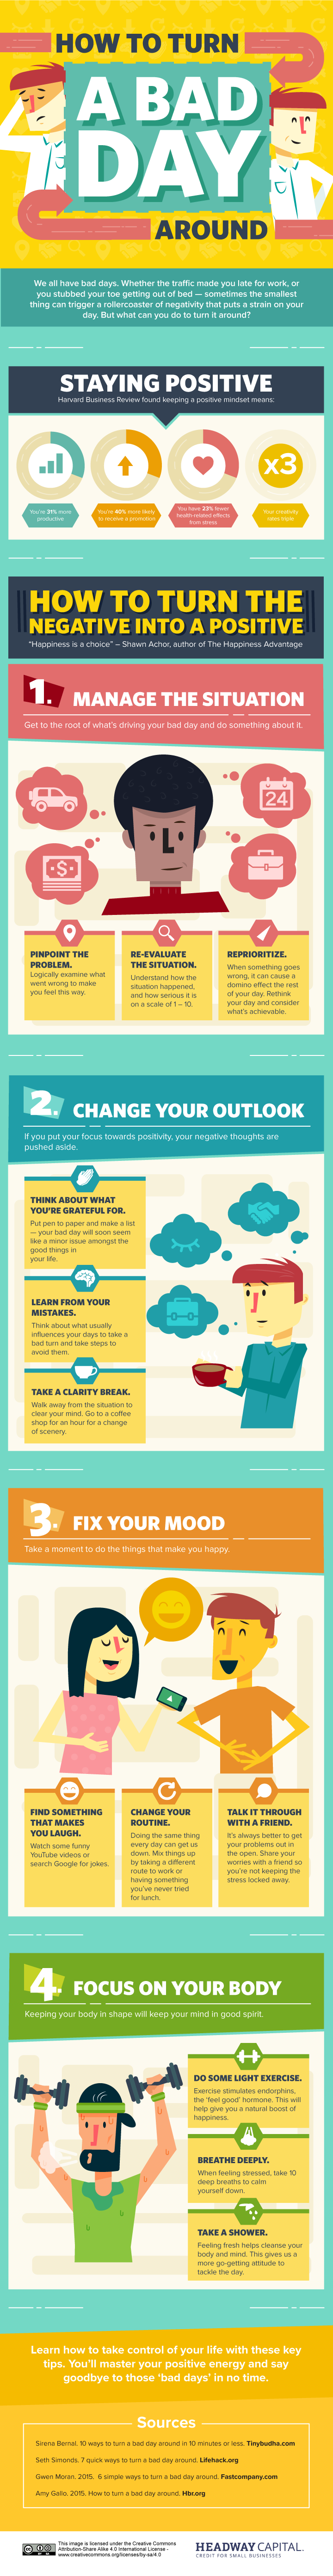 How to Turn a Bad Day Around #Infographic